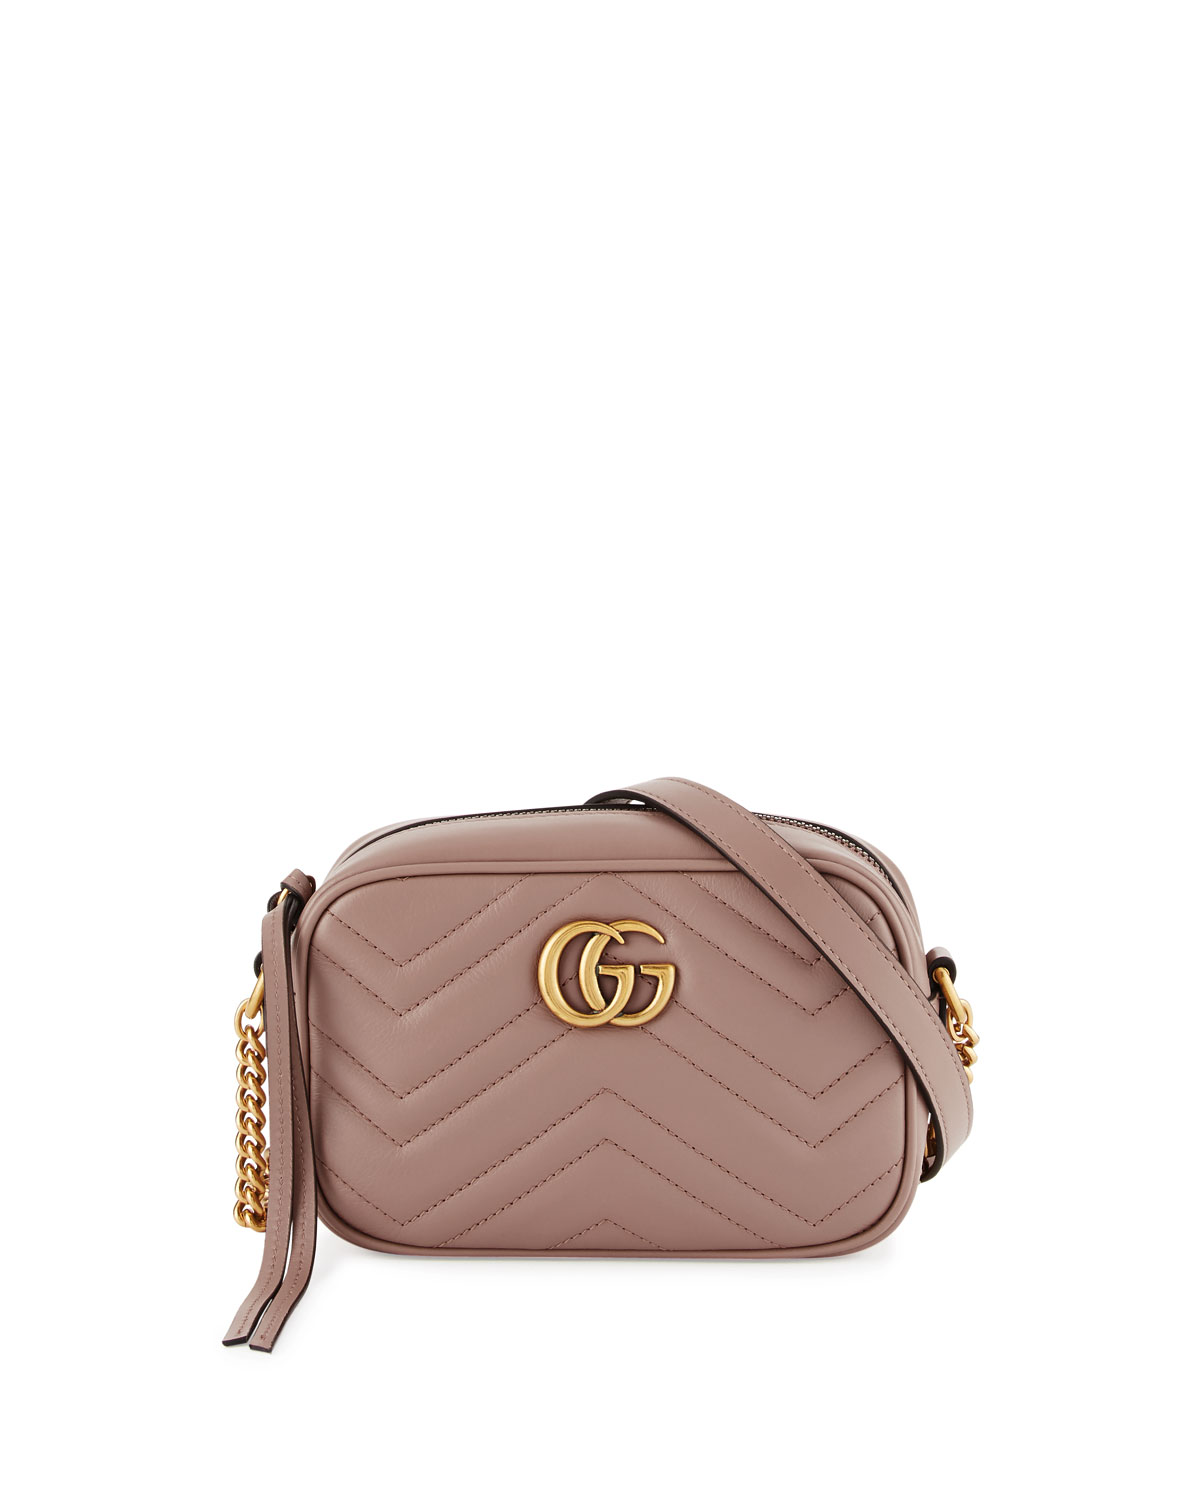 fb06b14e3283 Gucci GG Marmont Mini Matelasse Camera Bag